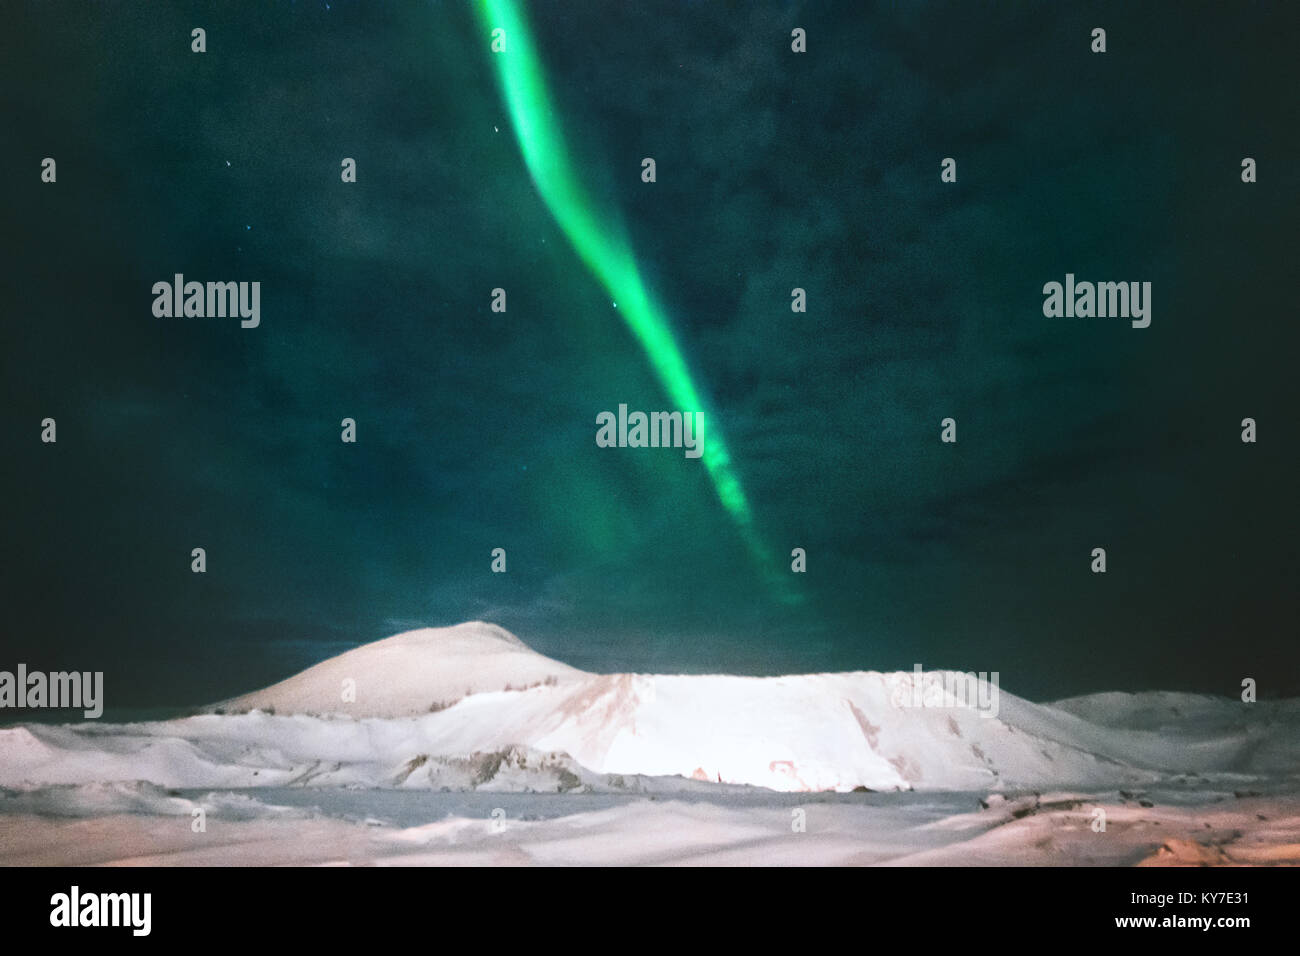 Northern lights Aurora borealis above Mountains Landscape Winter Travel scandinavian night scenery natural colors - Stock Image